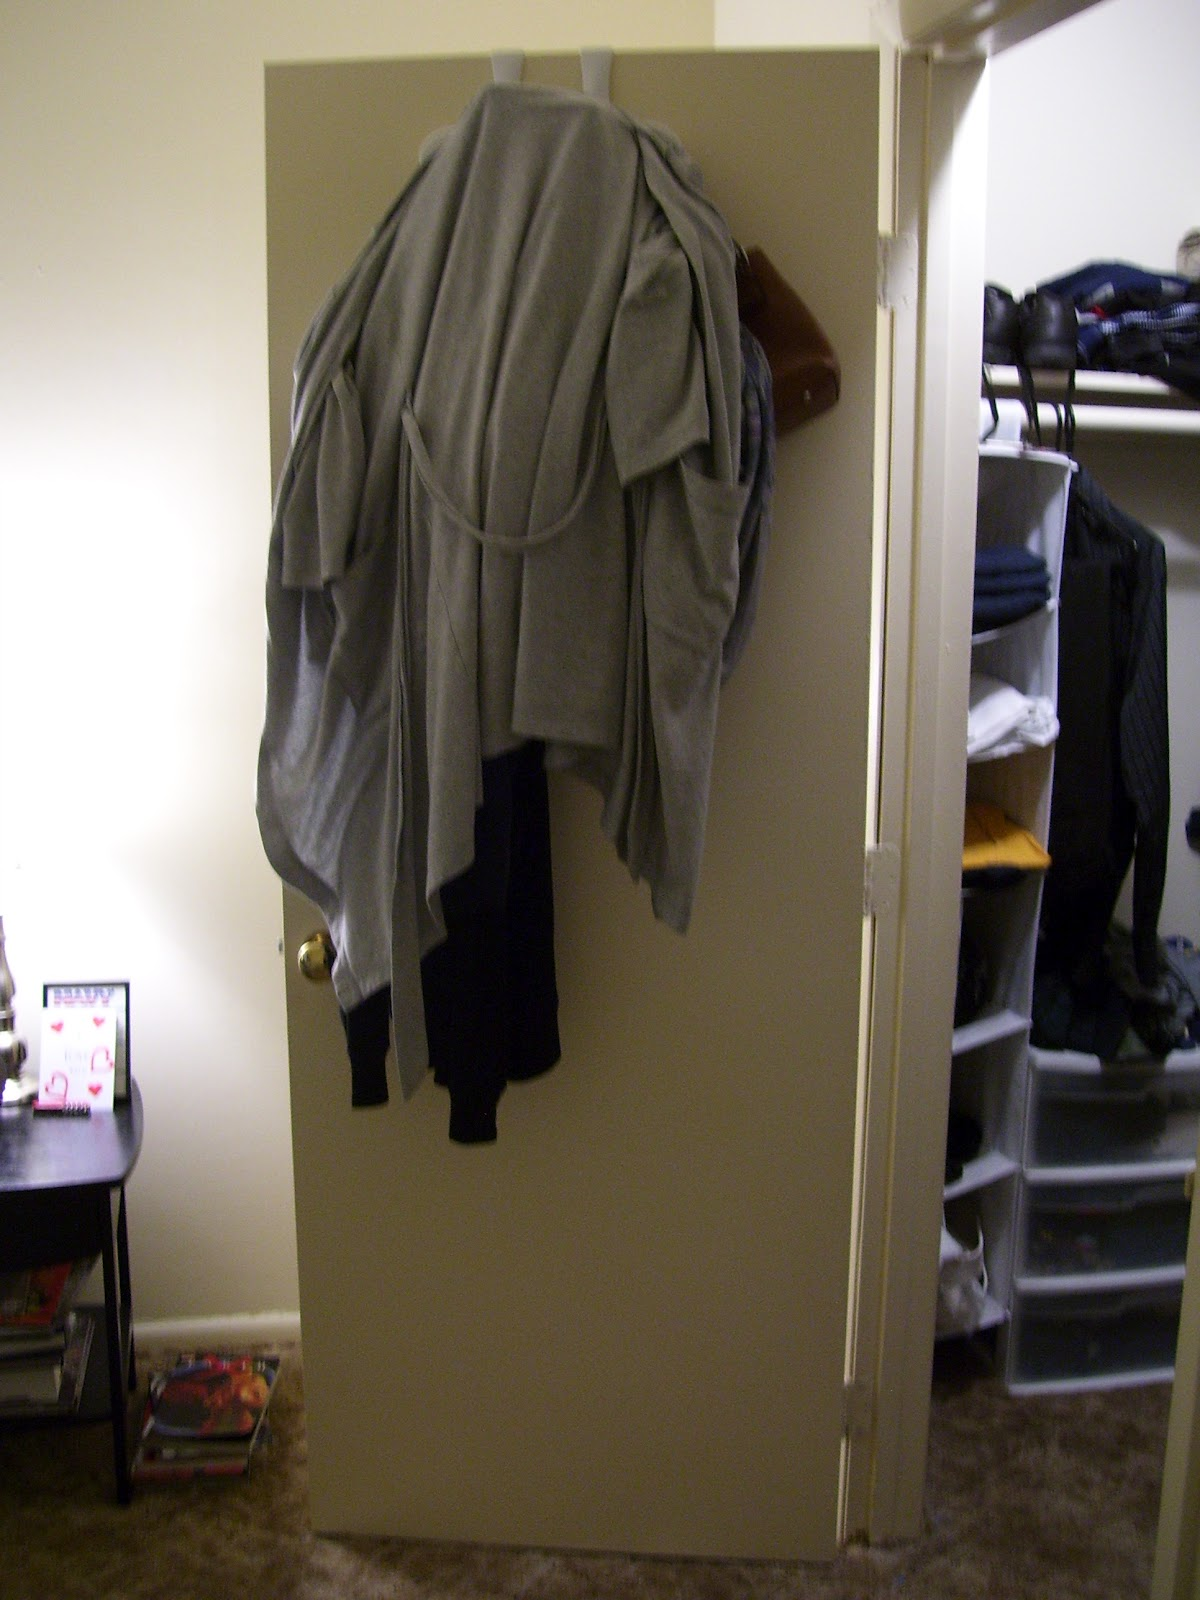 Apartment To Apartment: Closet Spring Cleaning